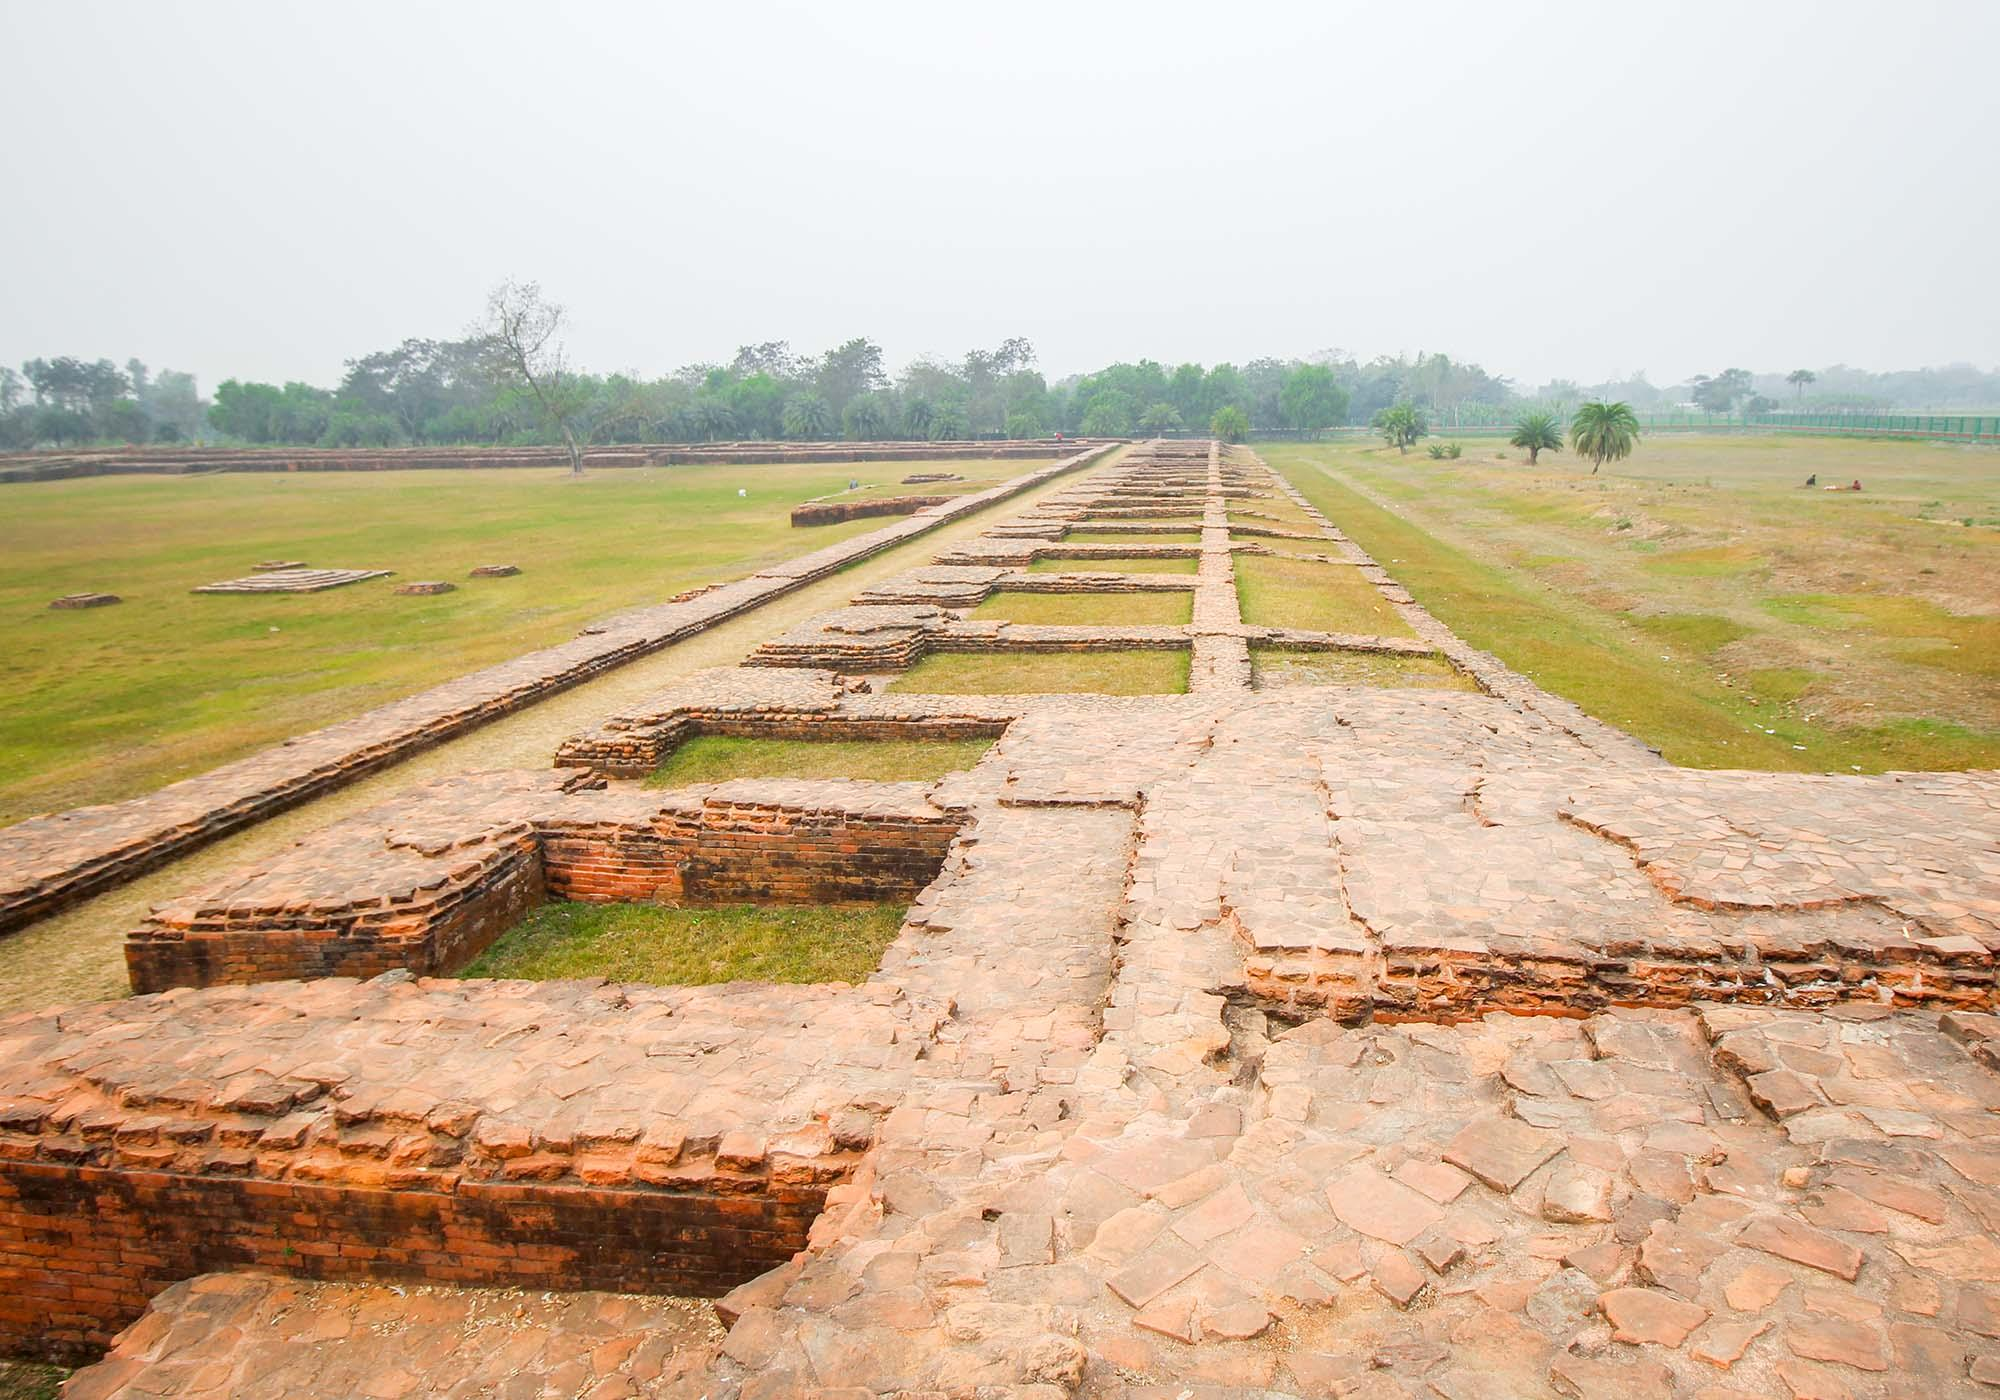 Some of the 177 rooms where the monks would have lived around the courtyard of the monastery of Somapura Mahavihara at Paharpur. – © Julfiker Ahmed